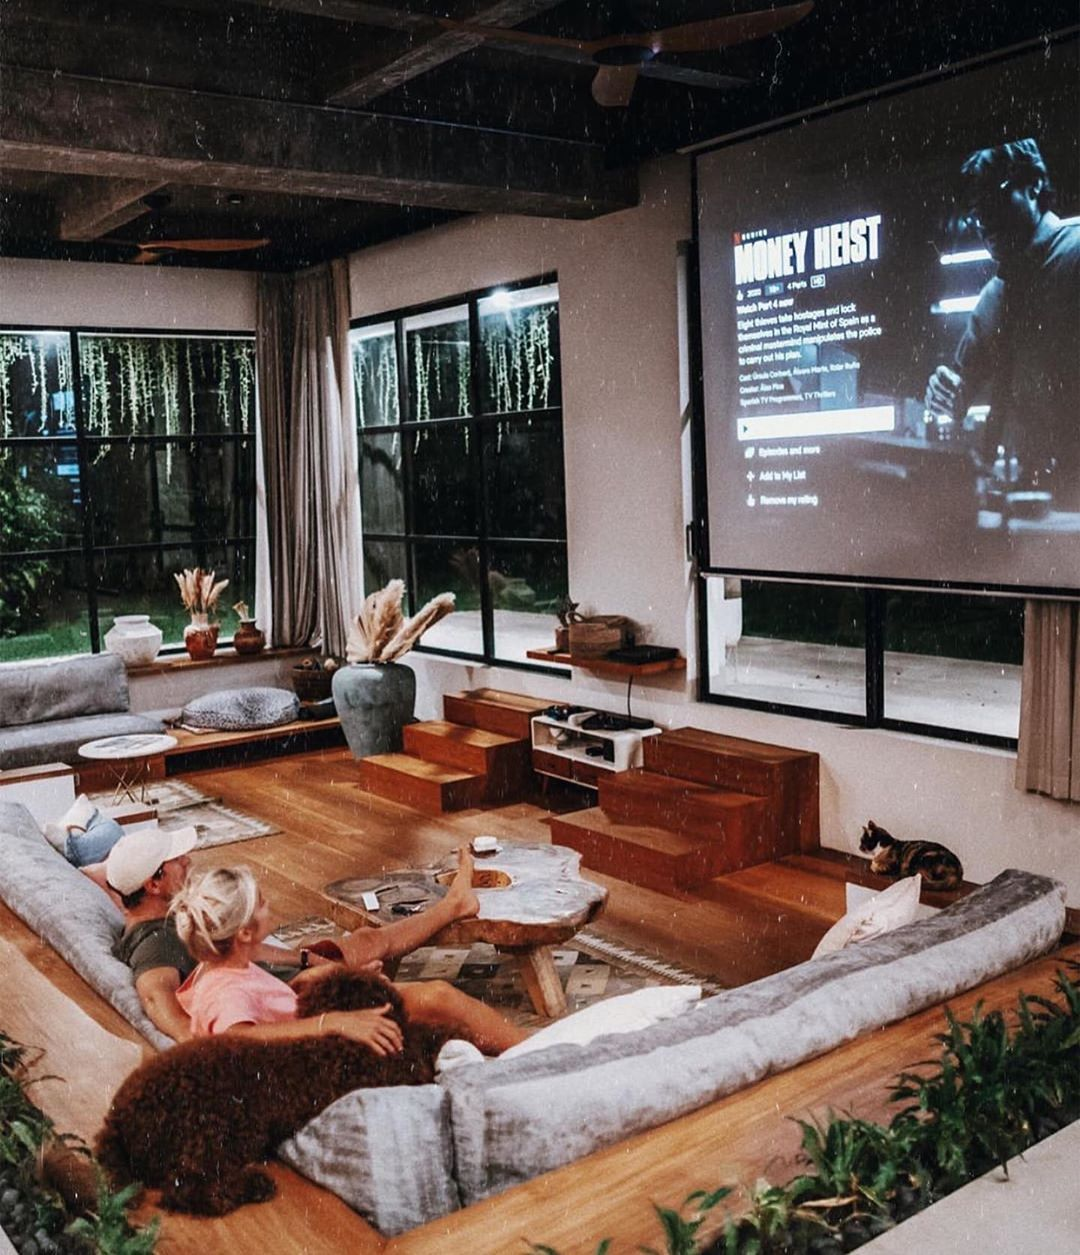 Late Nights In The City On Instagram Some People Are Good At Loving Others Are Good At Being Loved Two Very D Home House Design Dream House Interior